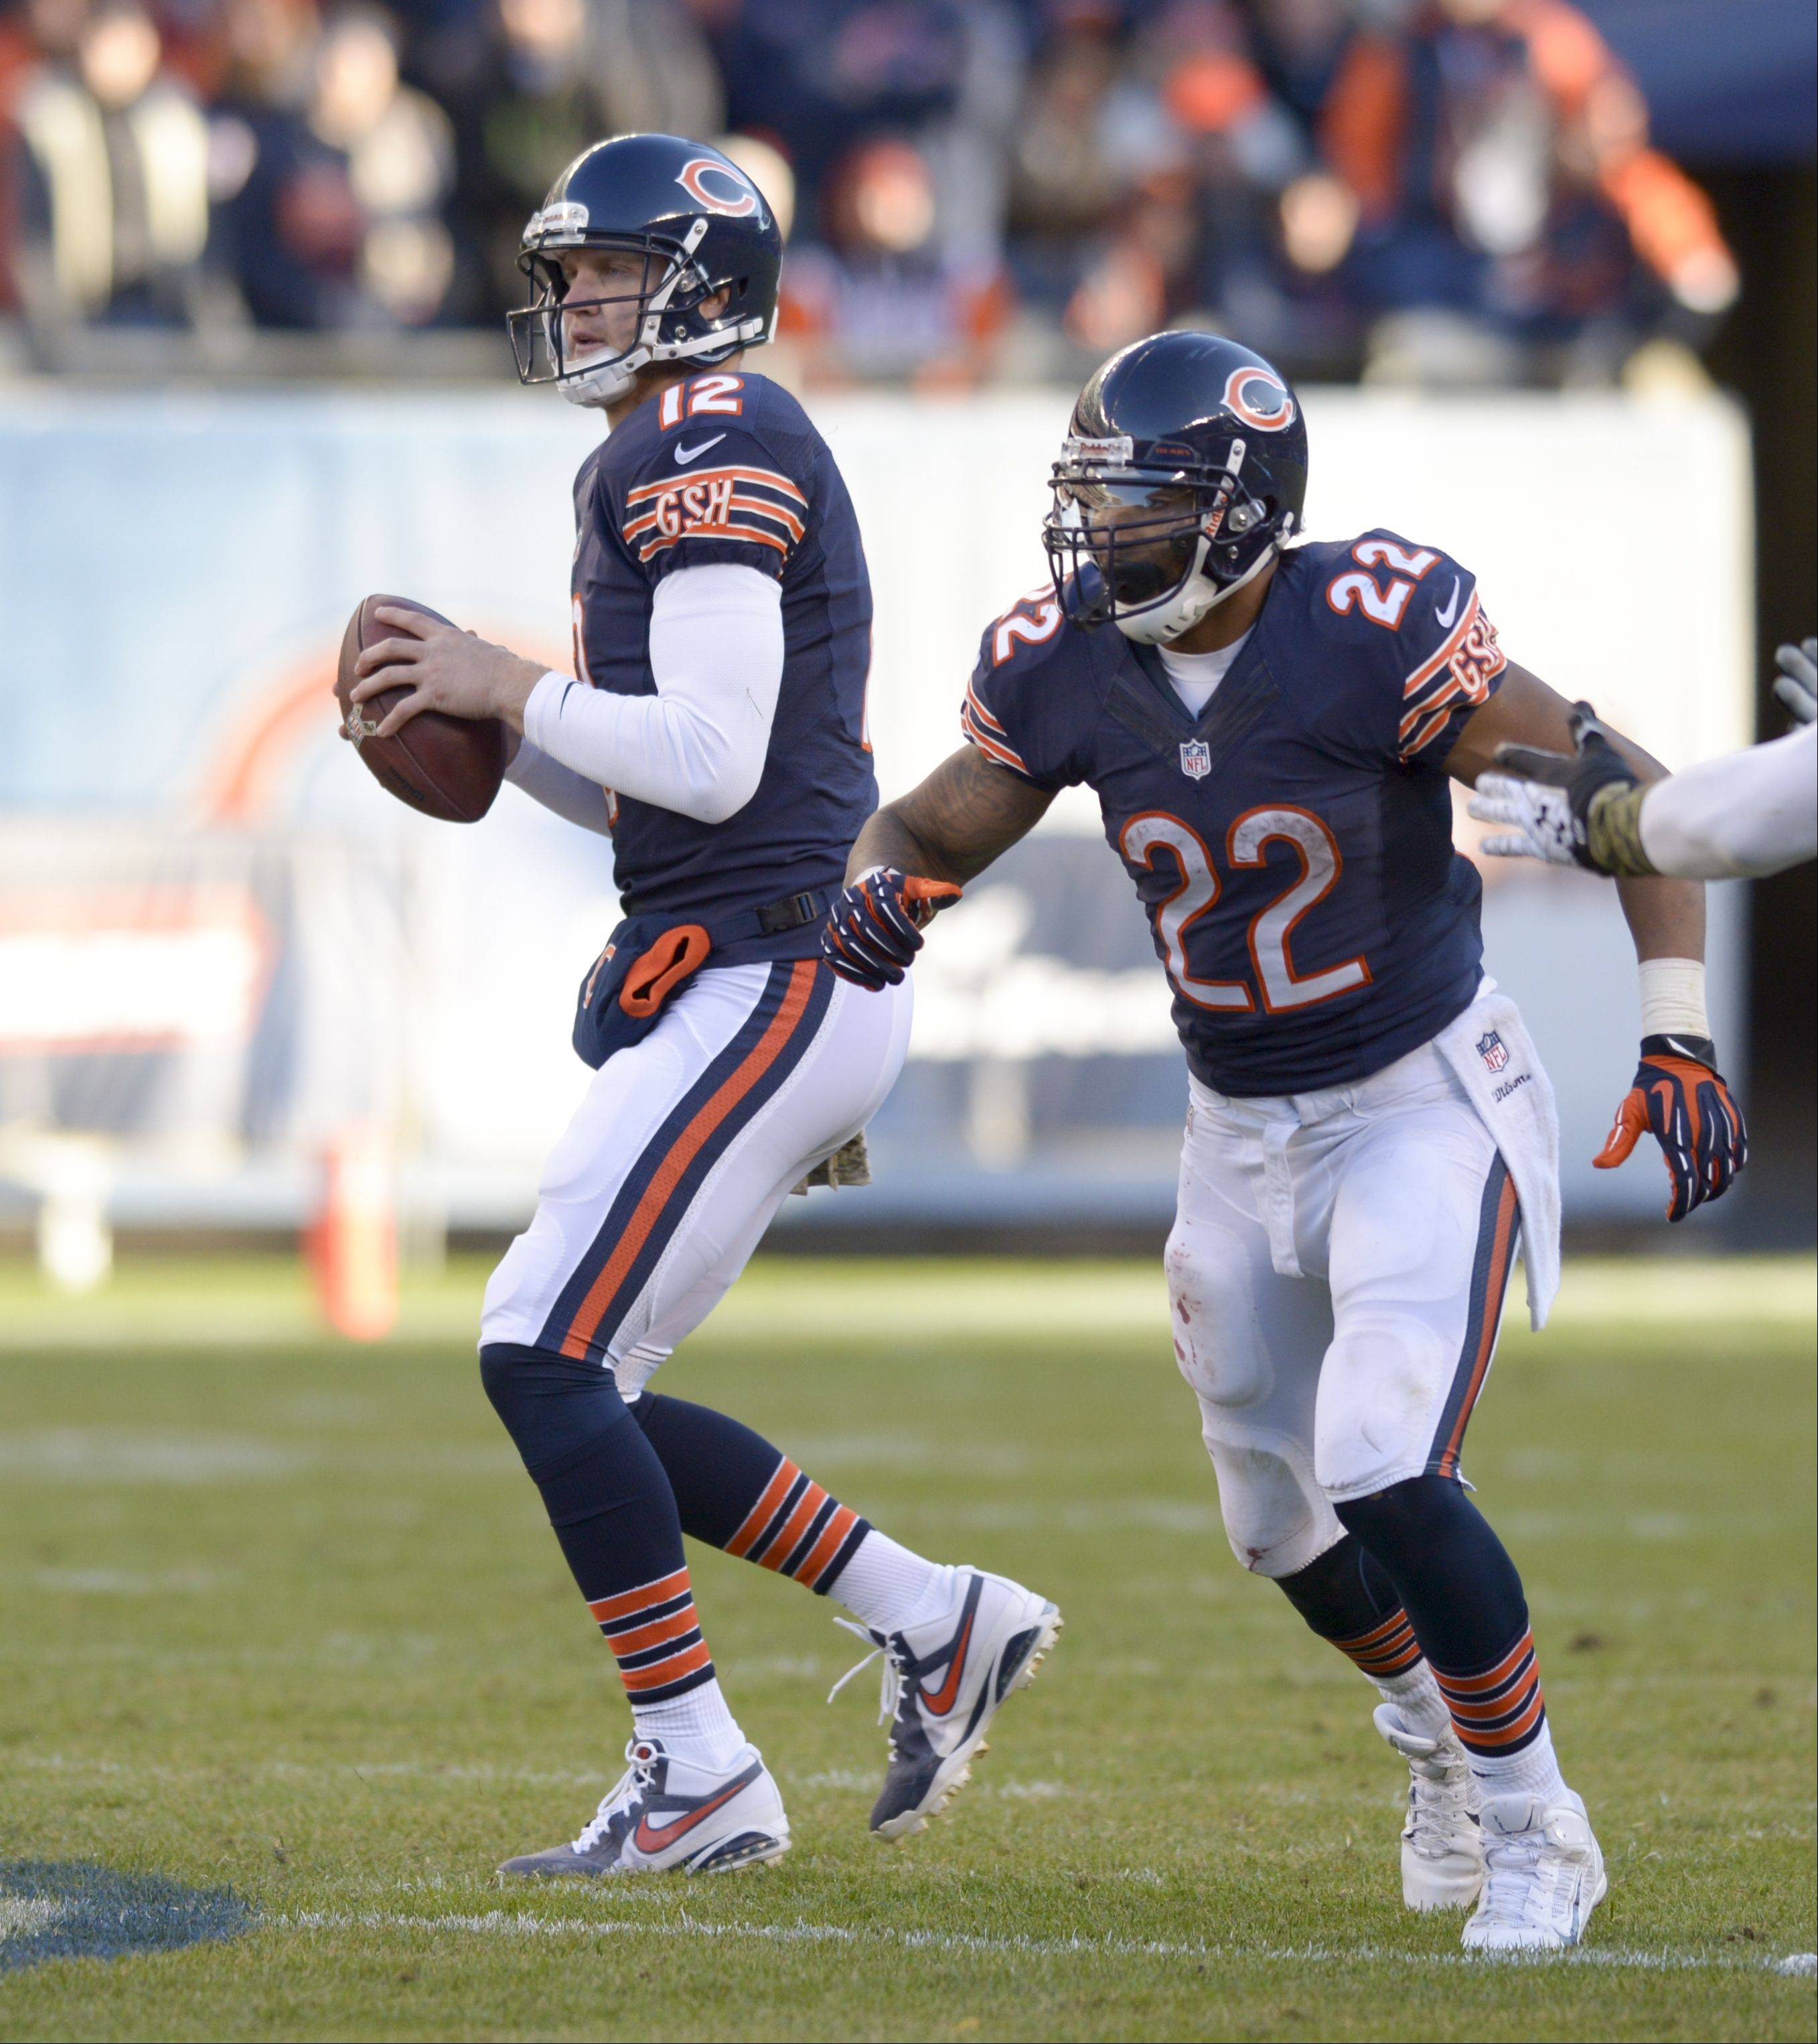 Josh McCown looks for an open receiver during the Bears' last drive Sunday against the Lions.